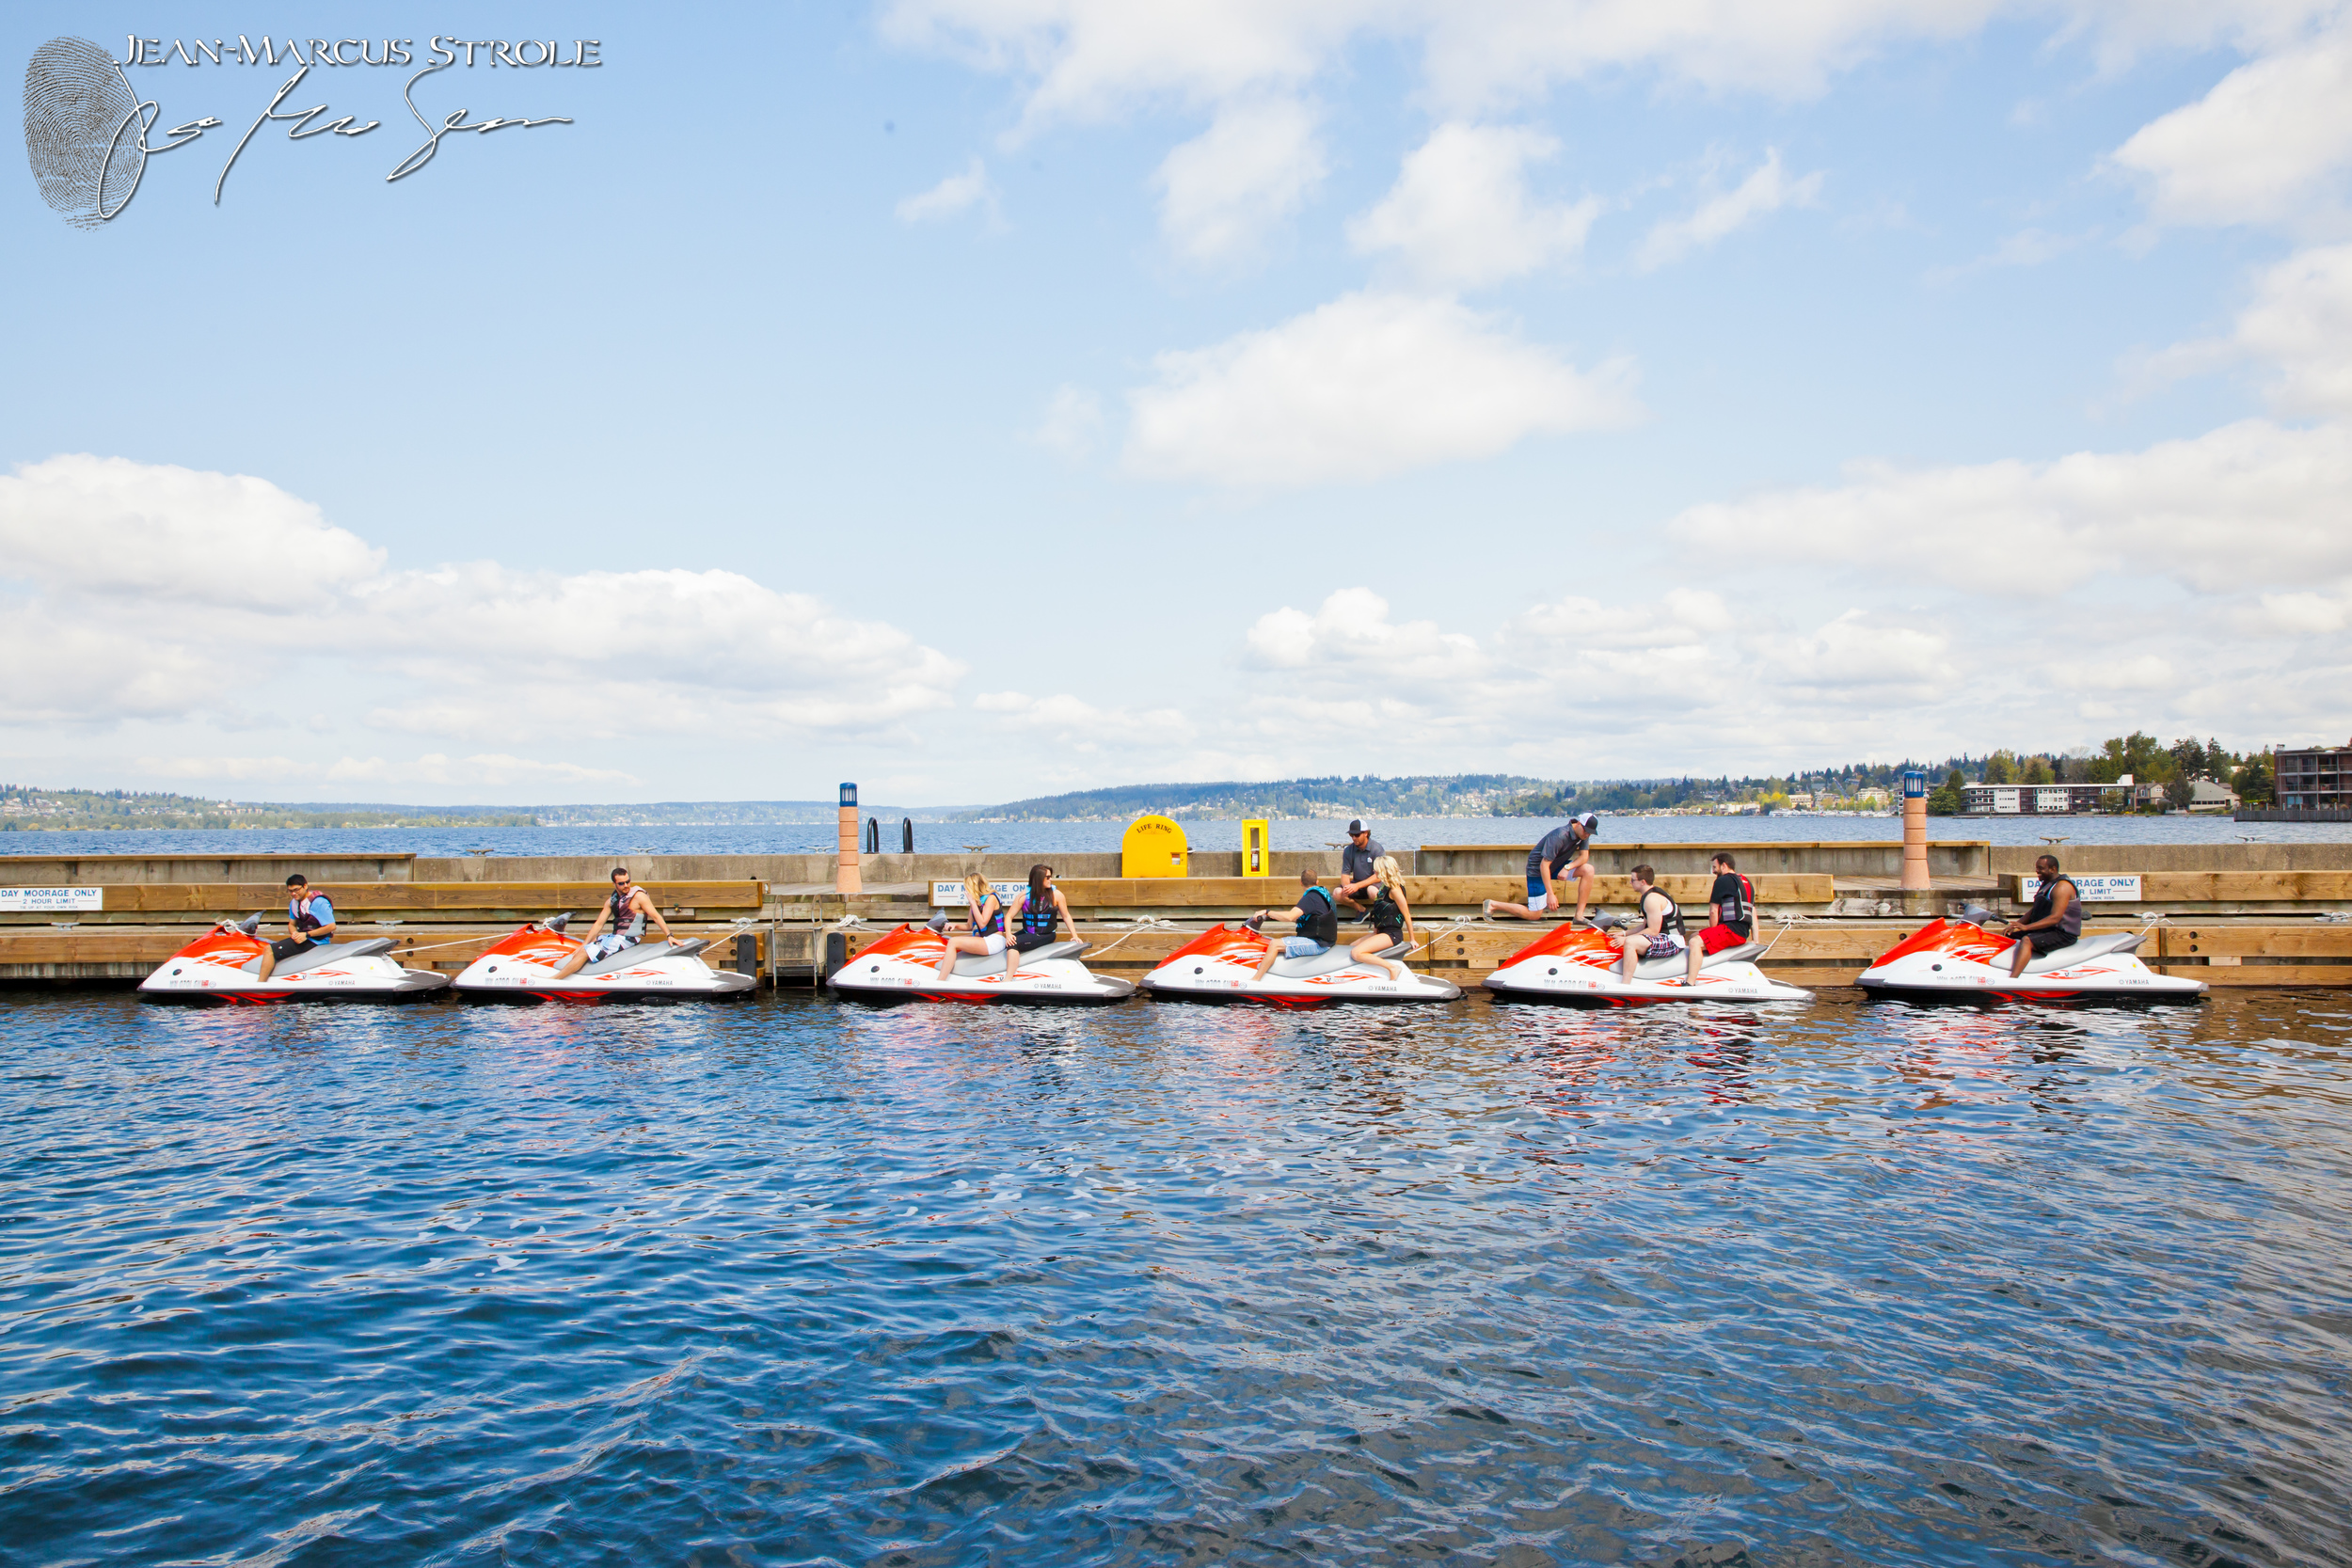 Carillon_Point_Waterfront_Adventures-Jean-Marcus_Strole_Photography-33.jpg